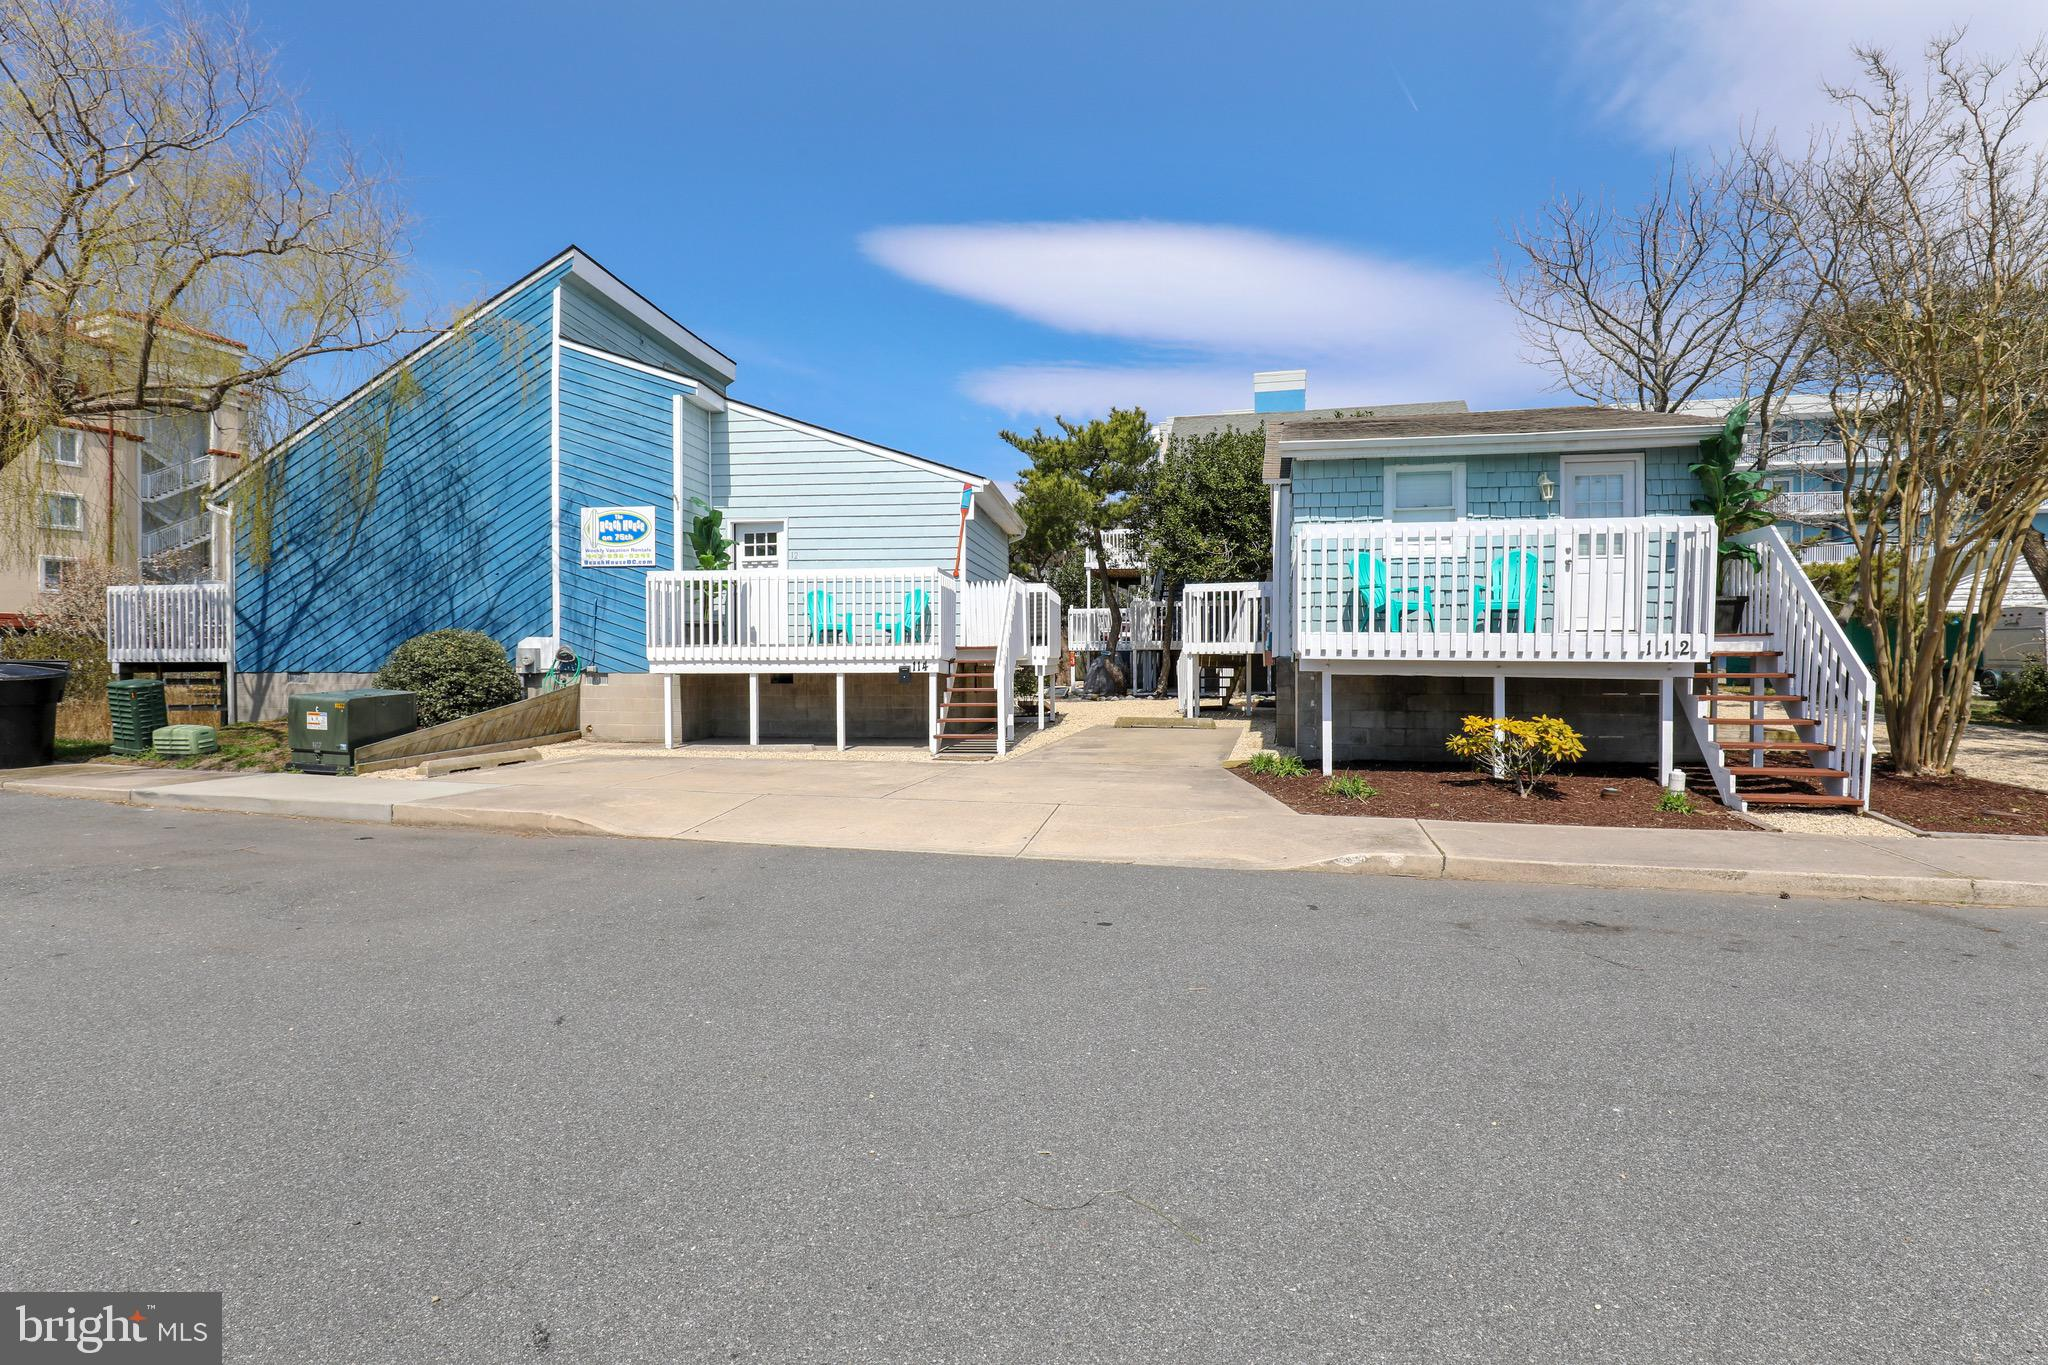 112 75TH STREET, OCEAN CITY, MD 21842